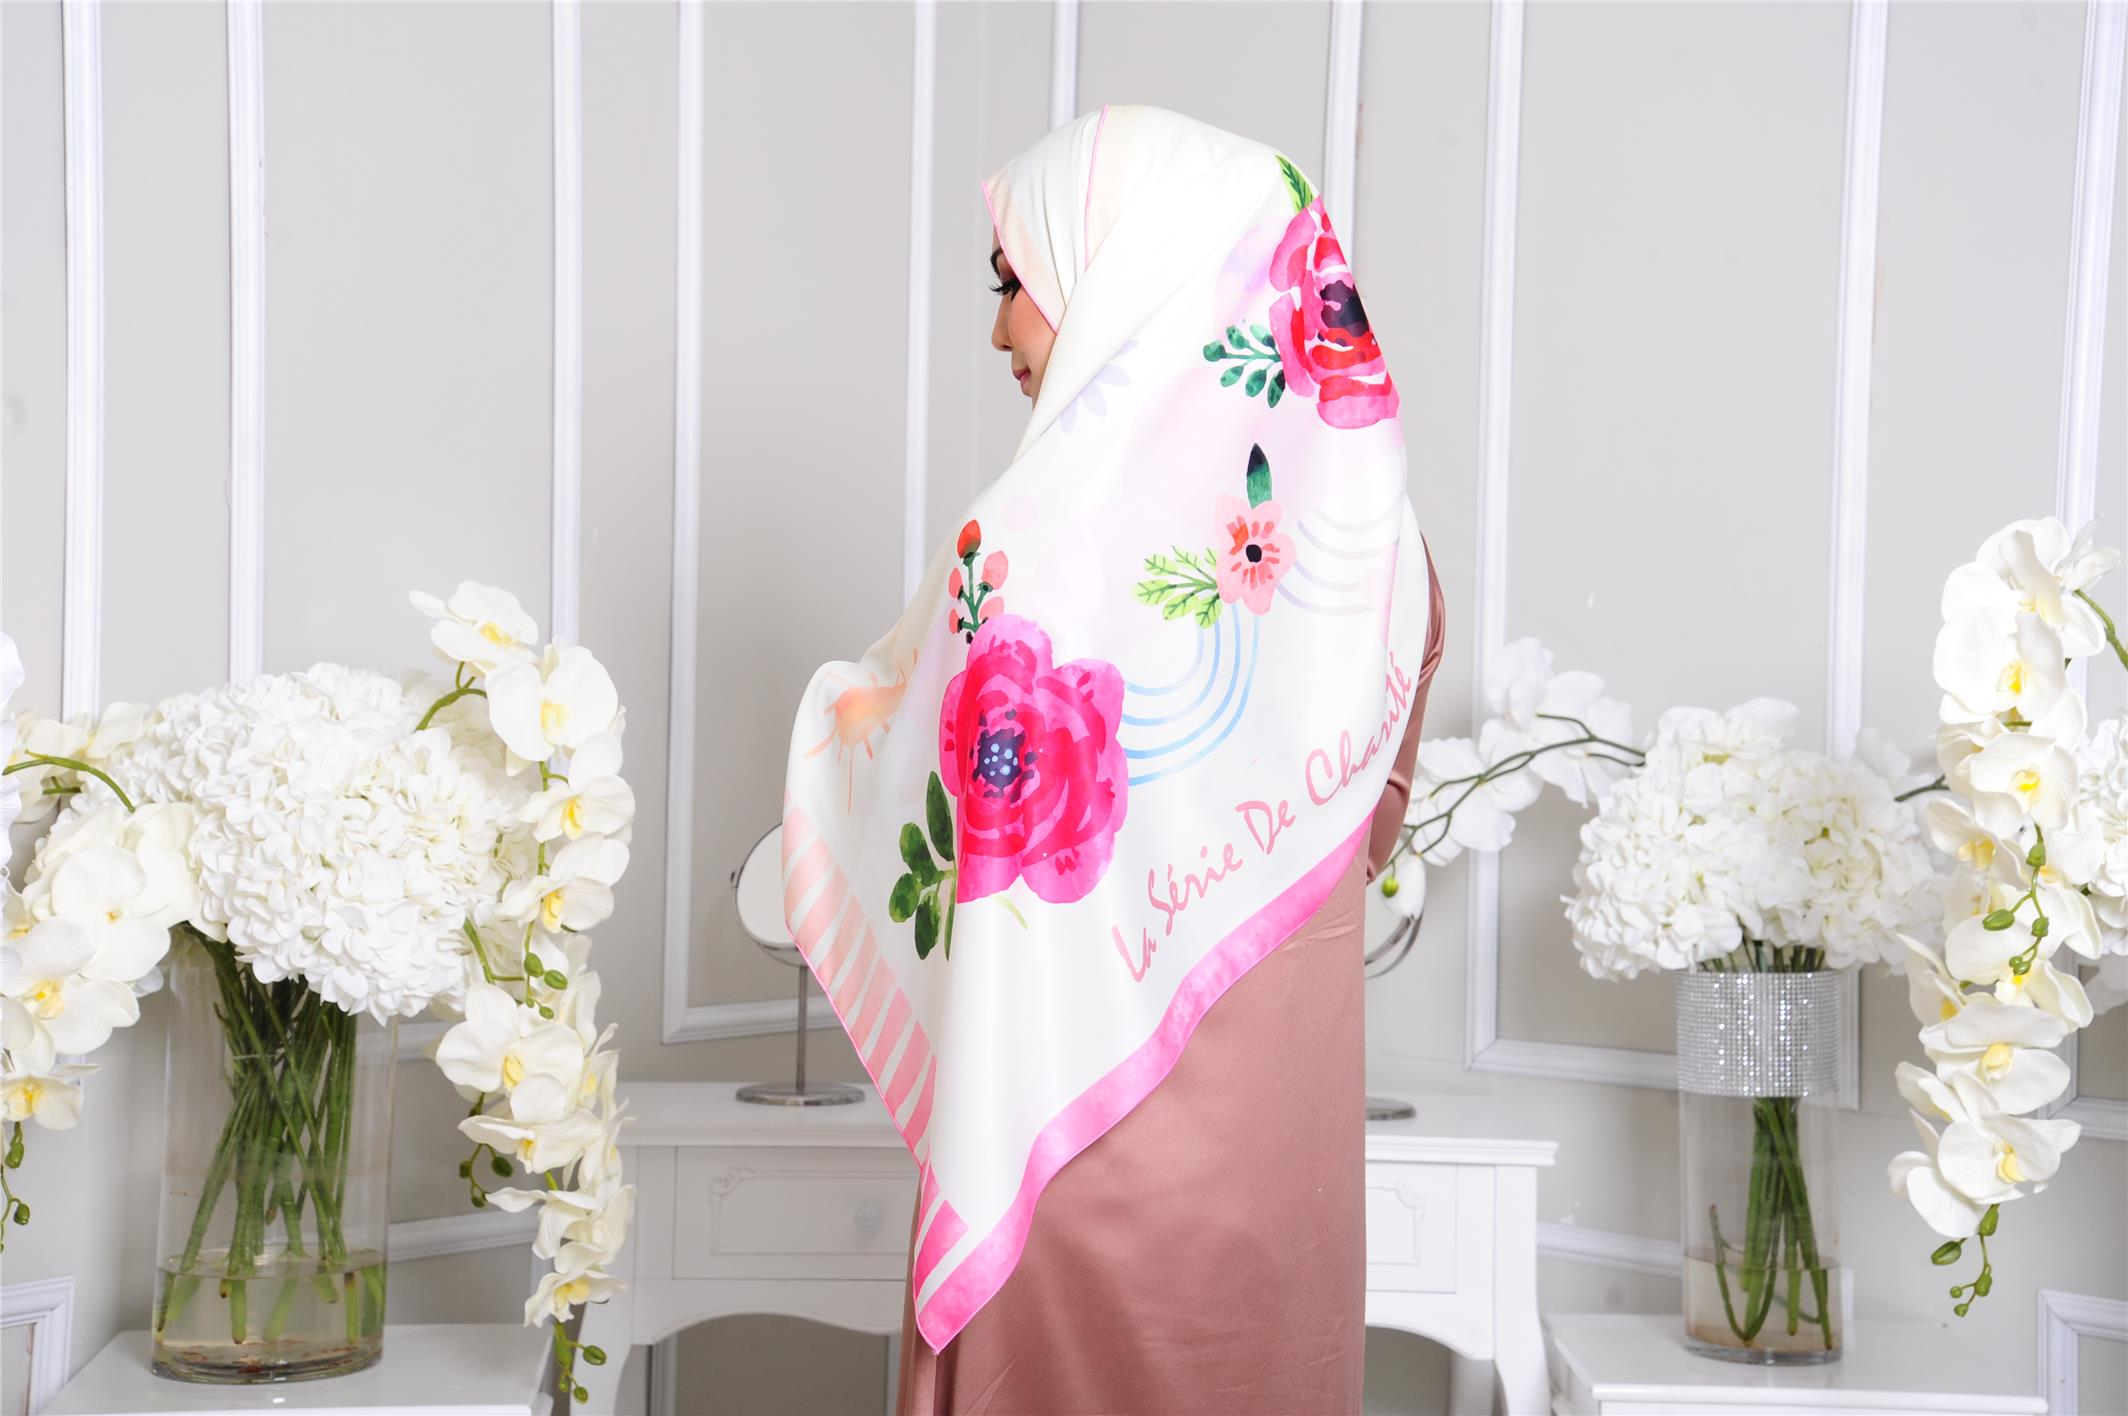 Dull Satin High Quality Guzelhive Magnifique Shawl